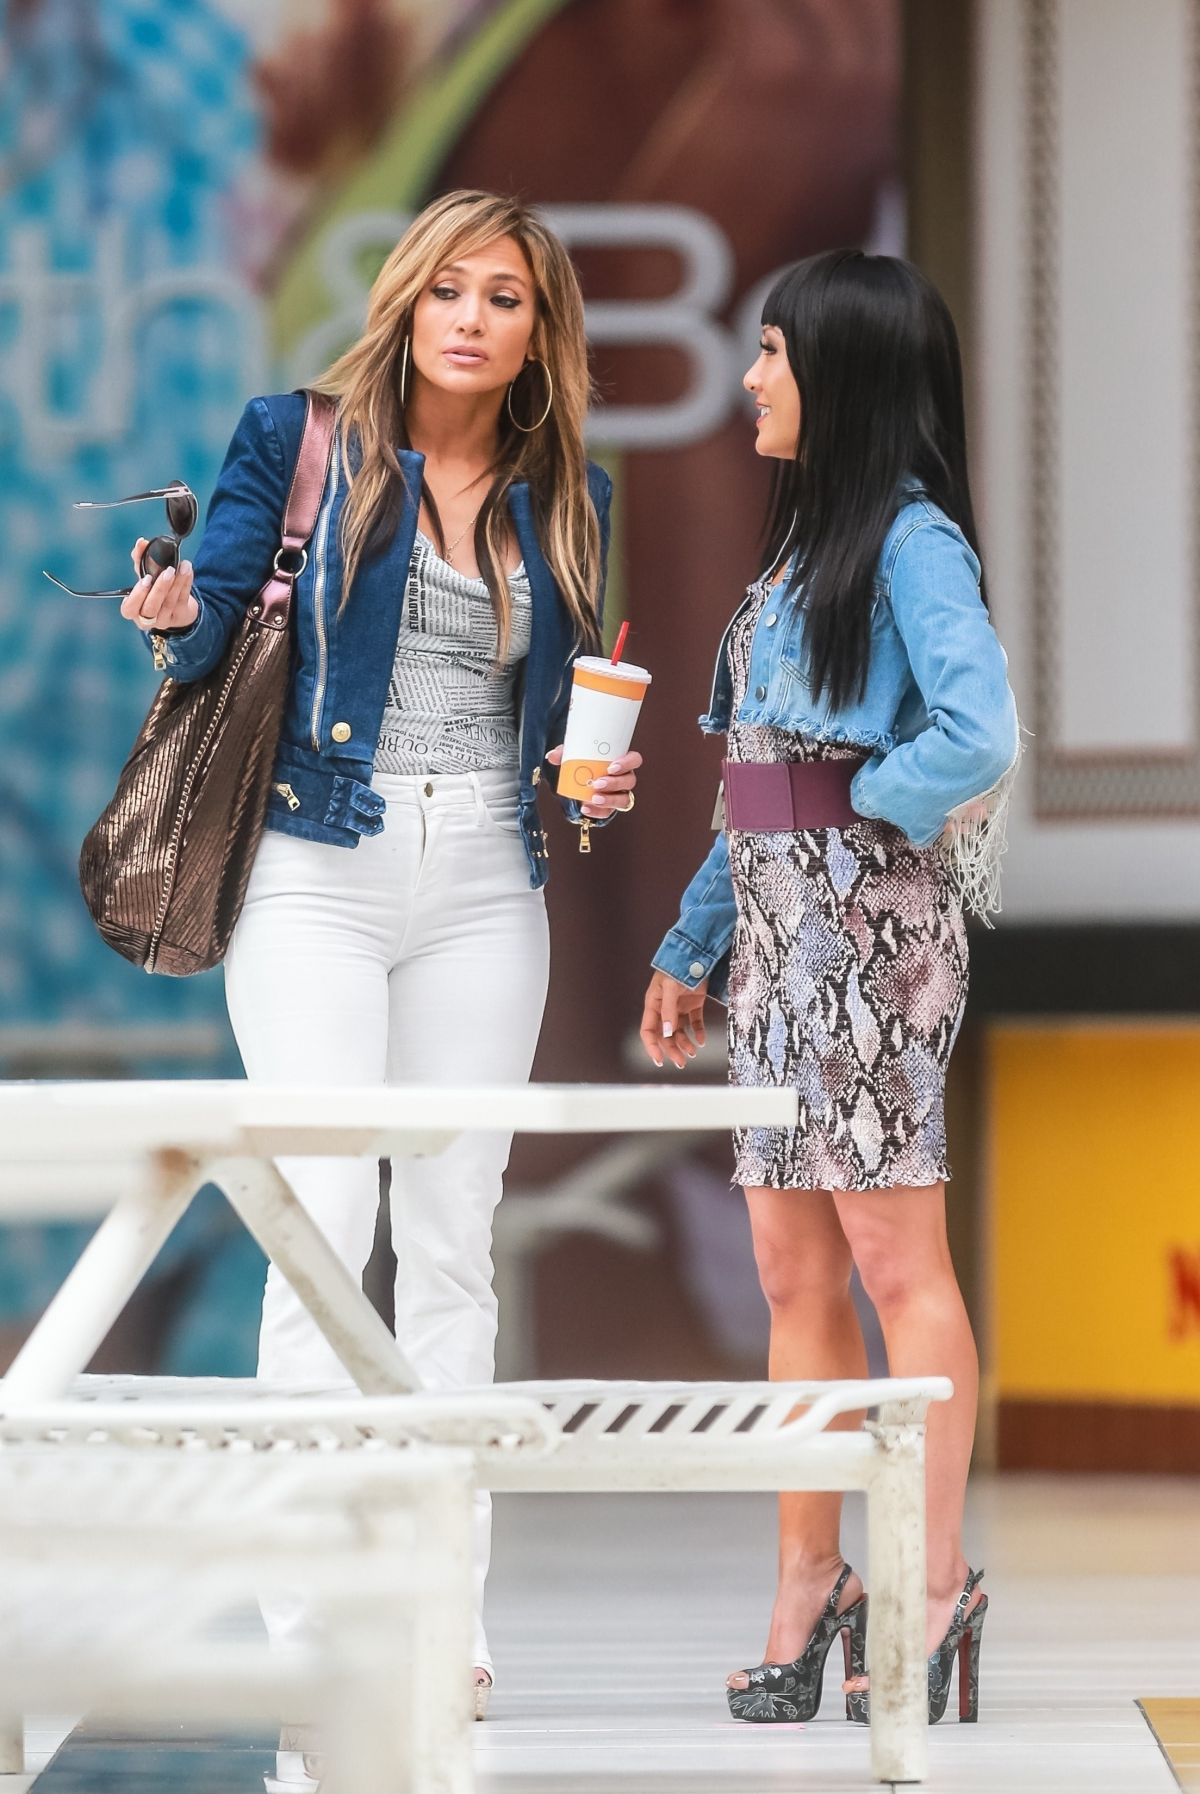 JENNIFER LOPEZ and CONSTANCE WU on the Set of Hustlers in New York 03/26/2019 - HawtCelebs